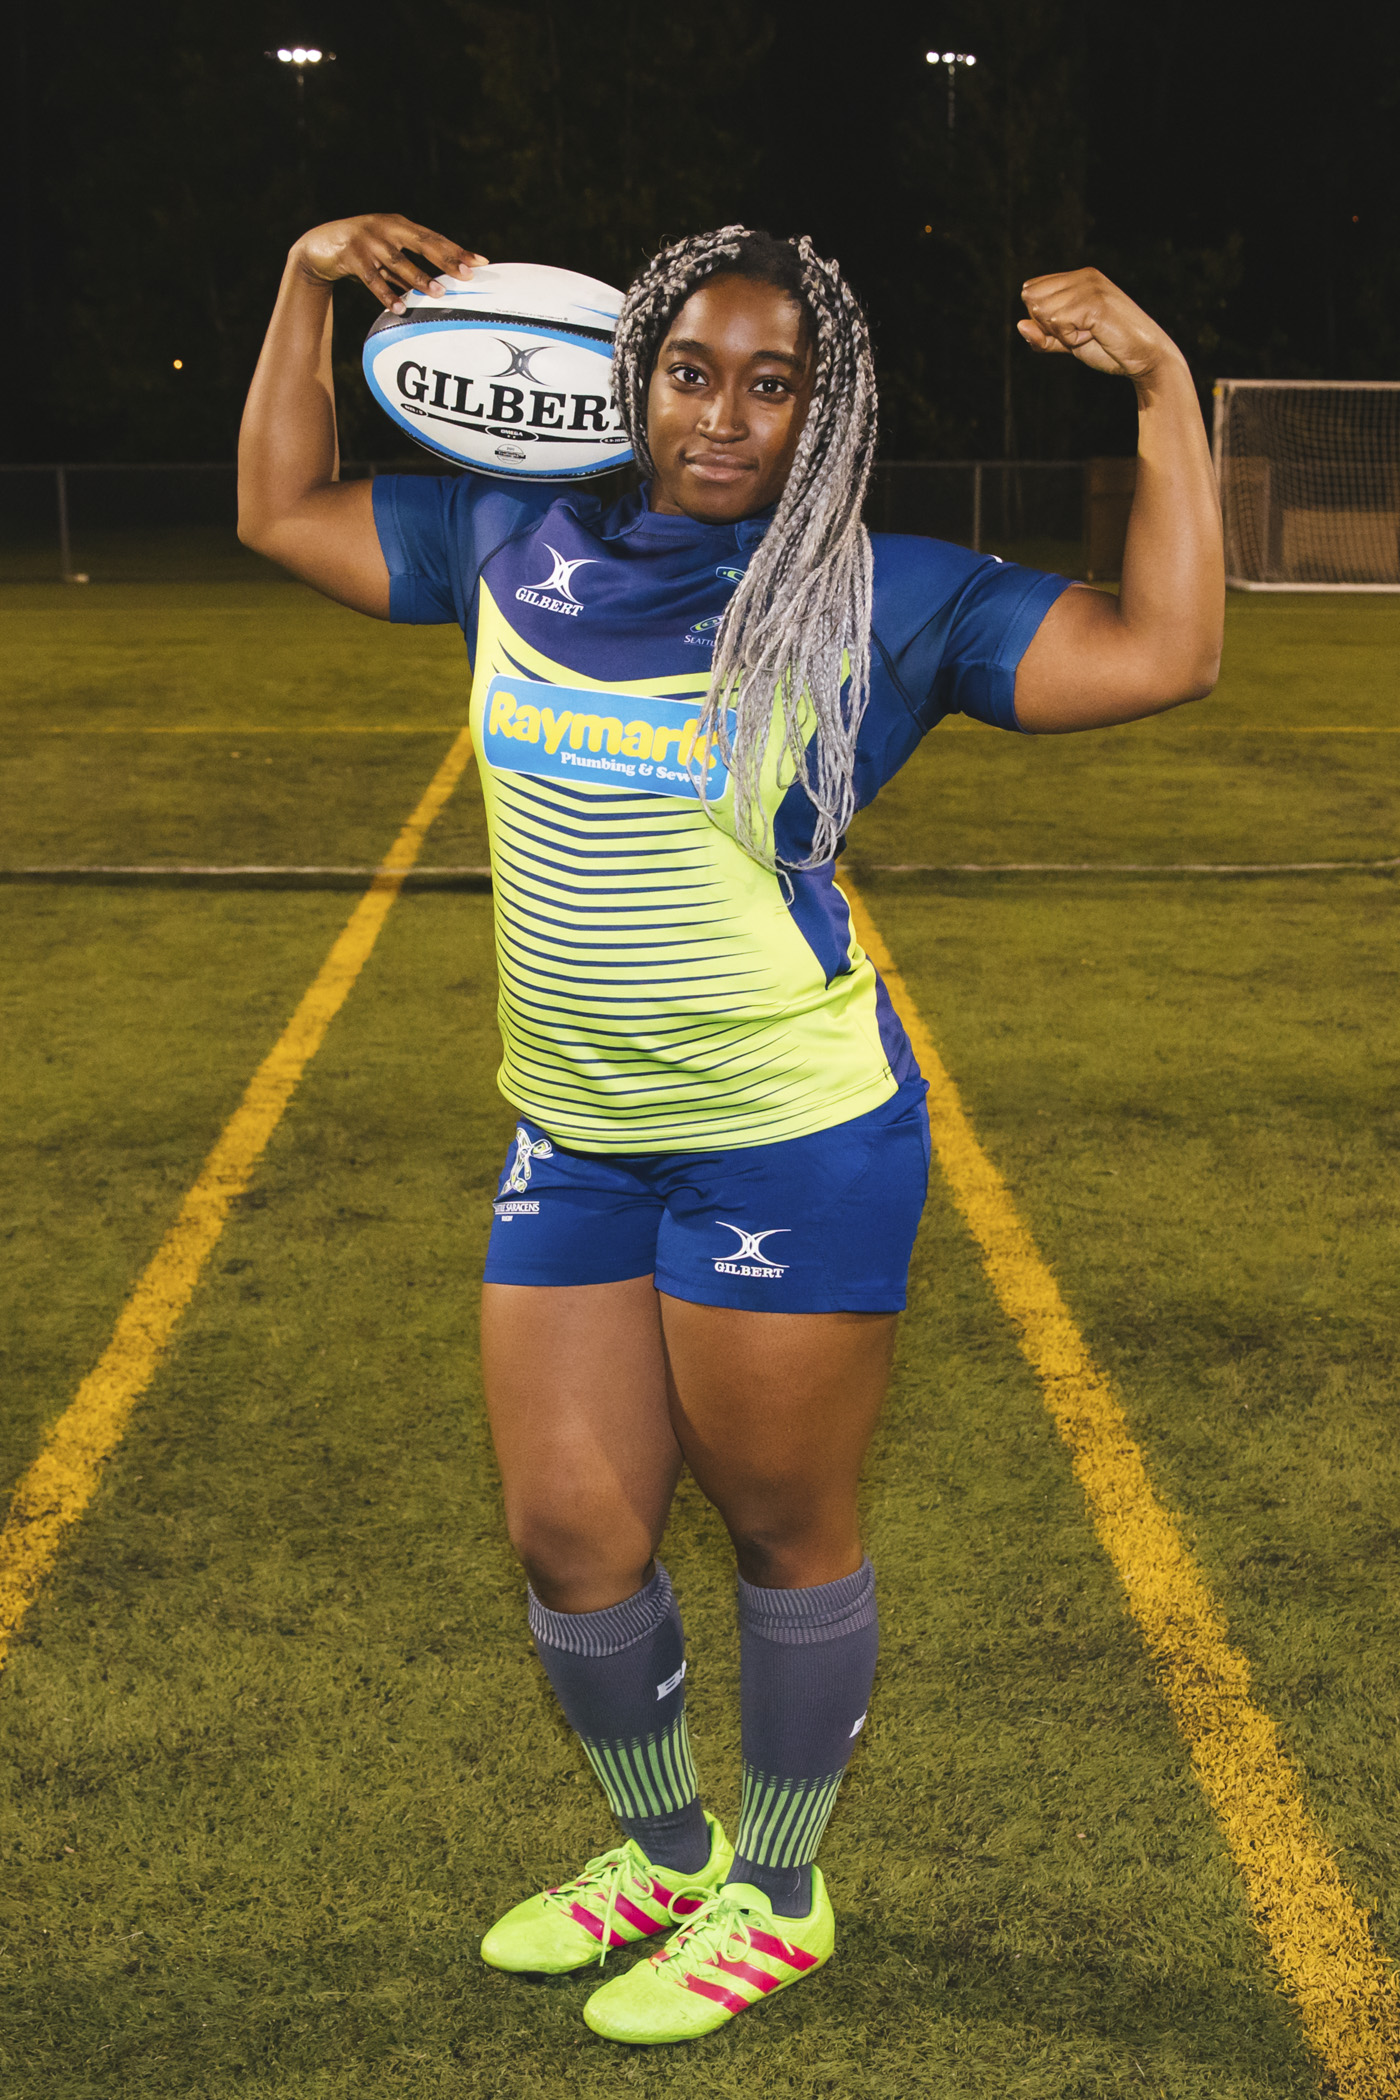 Meet Uche! When she isn't my fitspo or a weight lifting QUEEN, Uche plays hooker or prop for the Saracens. Her favorite movie is Miss Congeniality (Image: Sunita Martini / Seattle Refined).